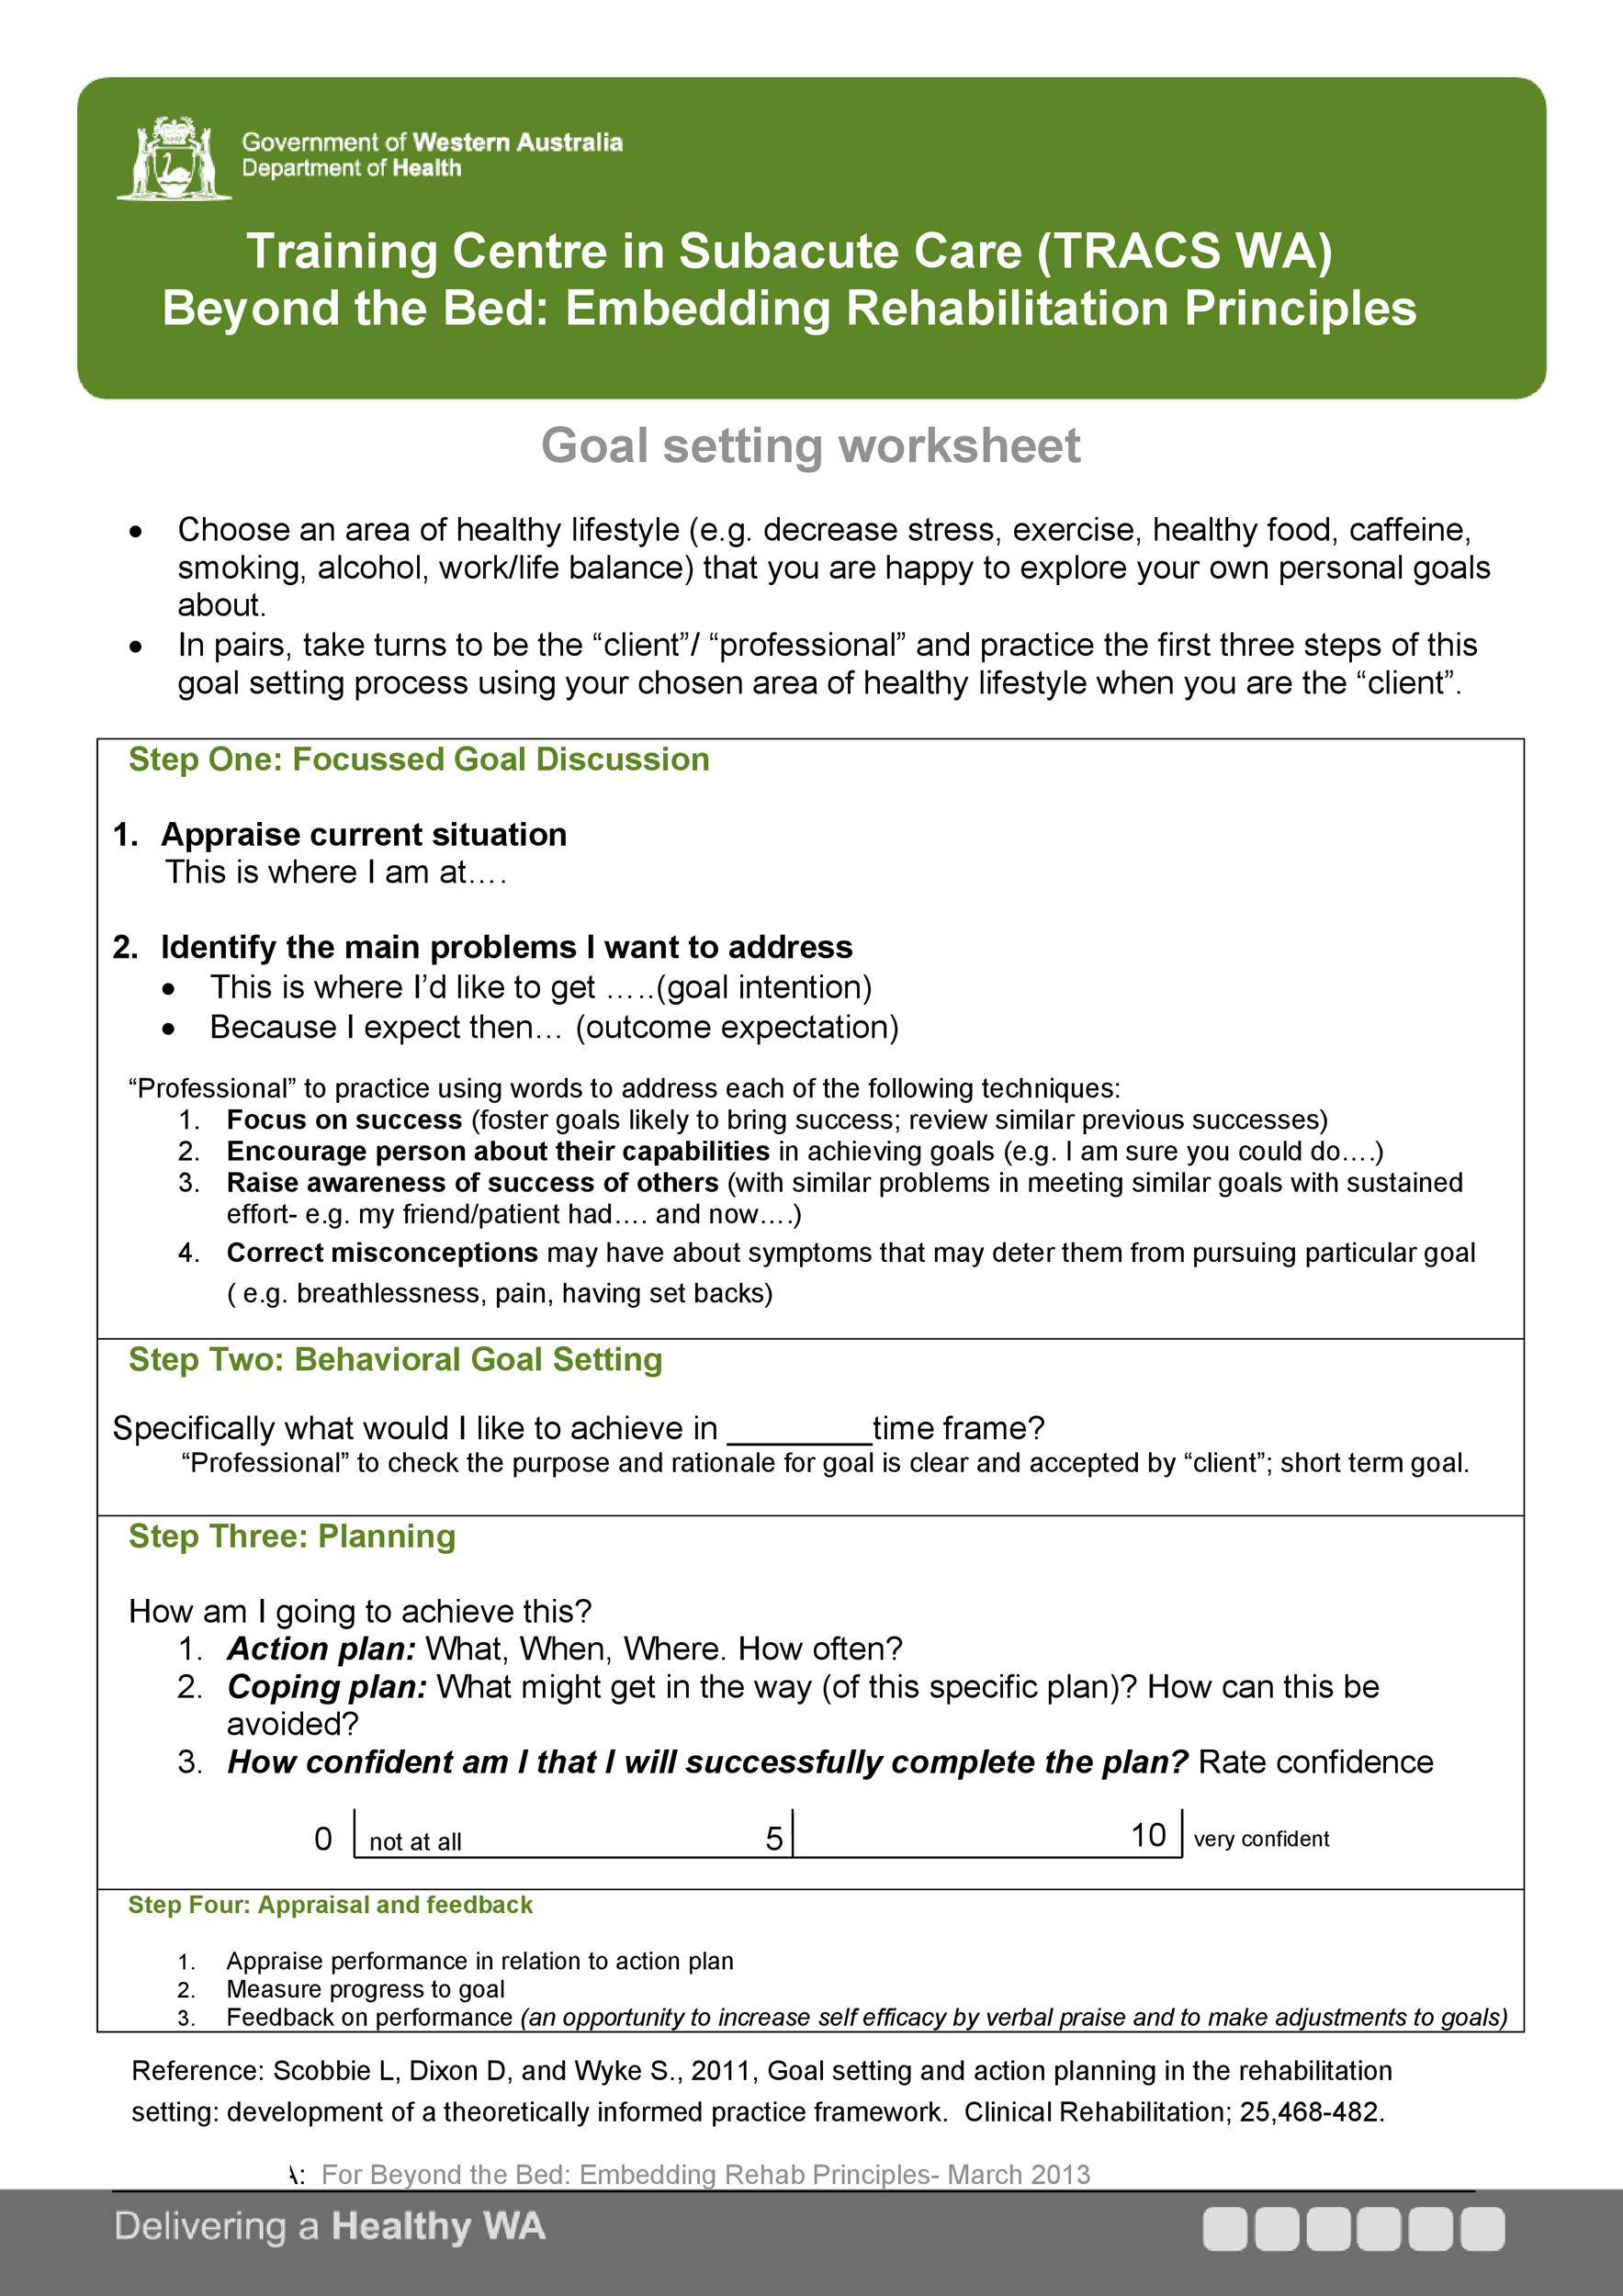 41 SMART Goal Setting Templates  Worksheets - Template Lab - goal planning template